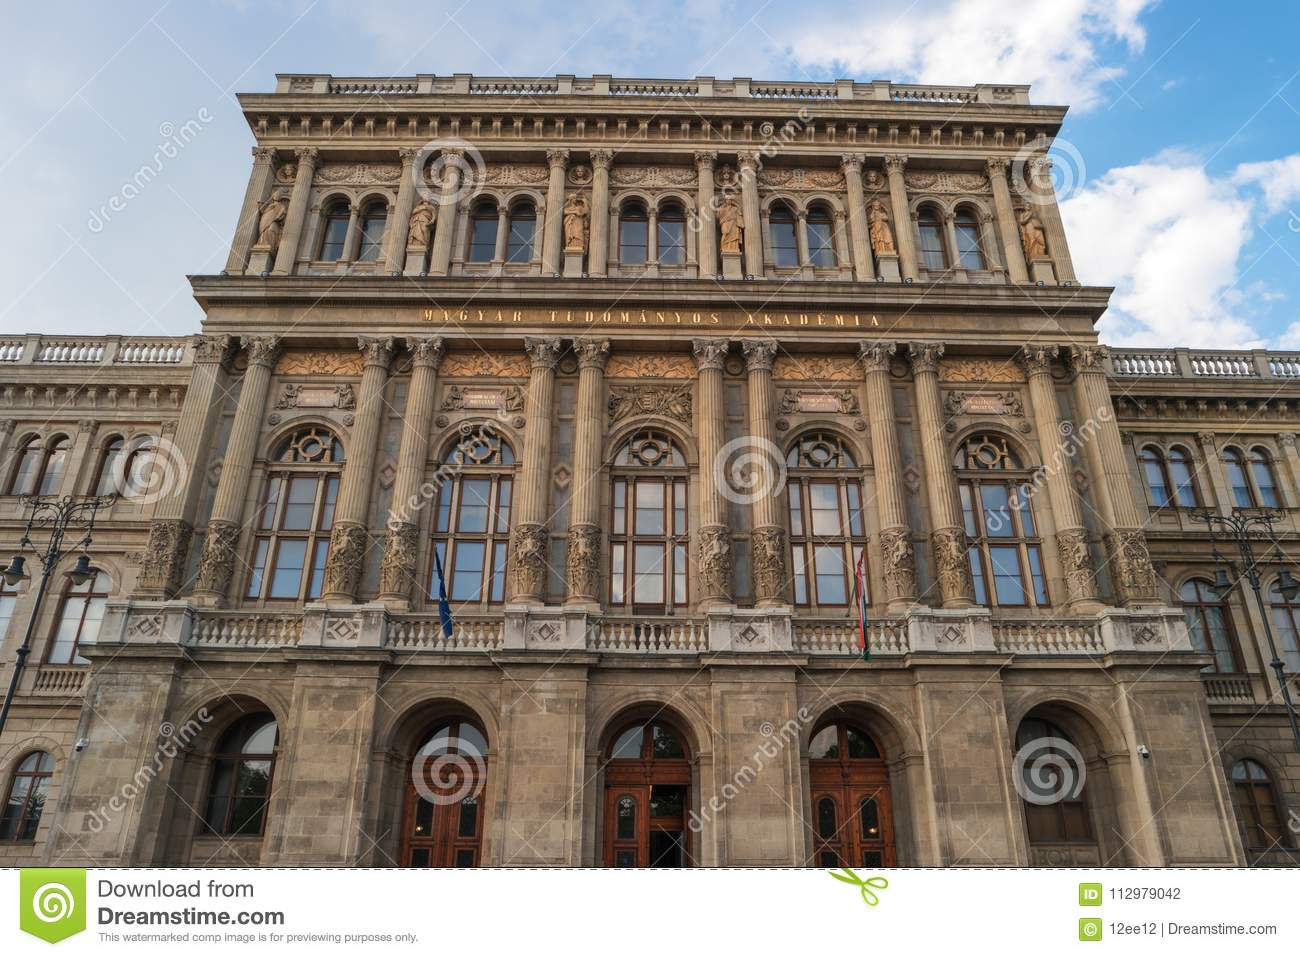 Hungarian Academy of Sciences, Budapest, Hungary